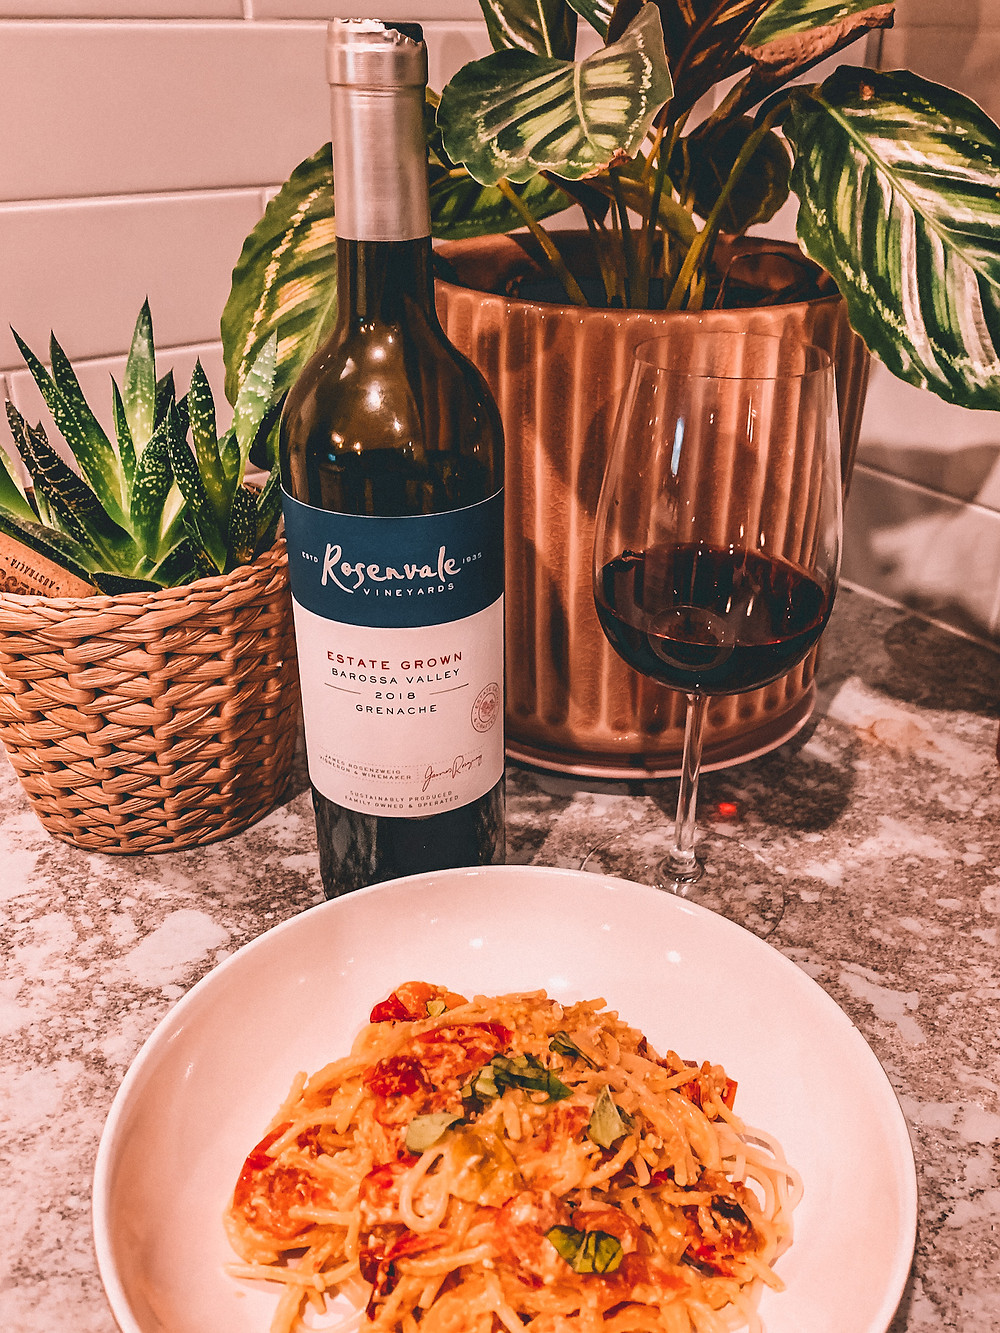 Bottle of red wine with pasta dish